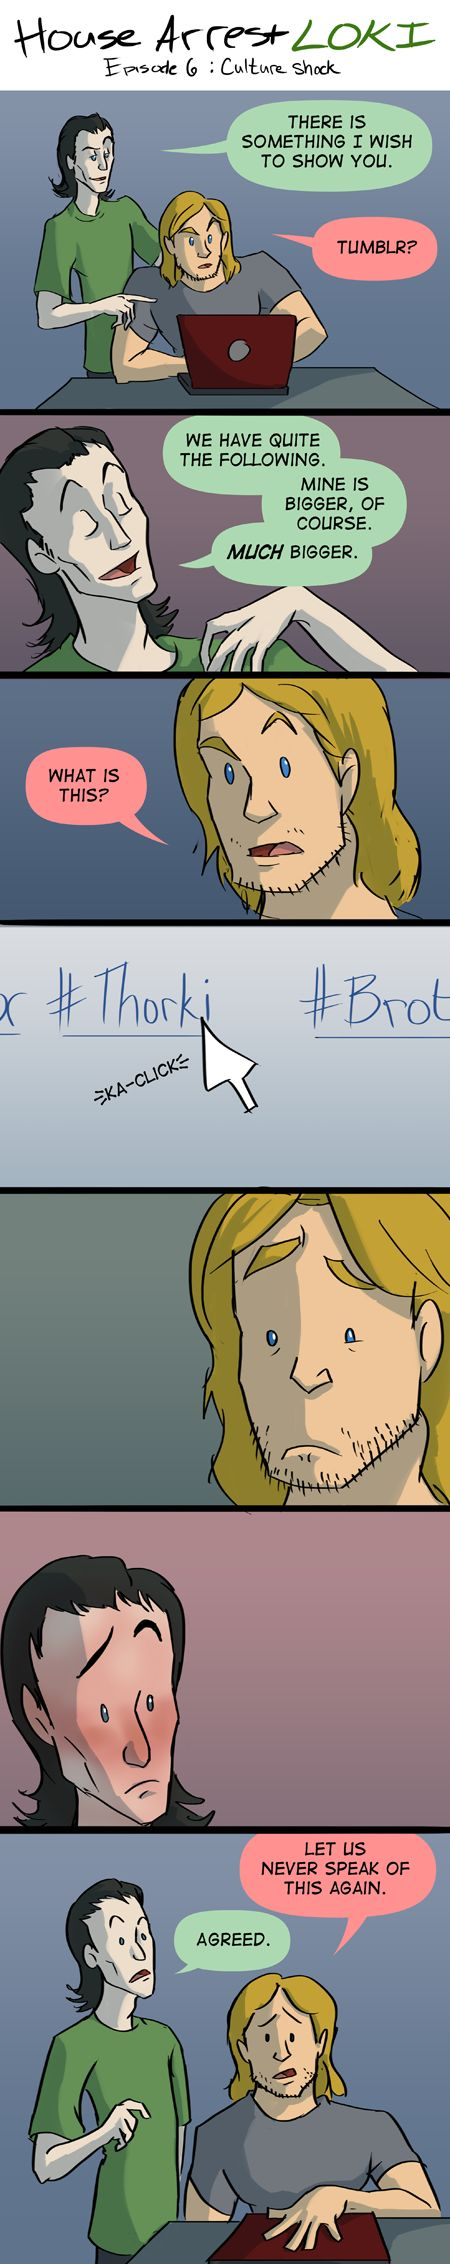 House Arrest Loki 6 by ~SMachajewski on deviantART Why people from tumblr? Why do you do this? THEY'RE BROTHERS FOR ODIN'S SAKE!